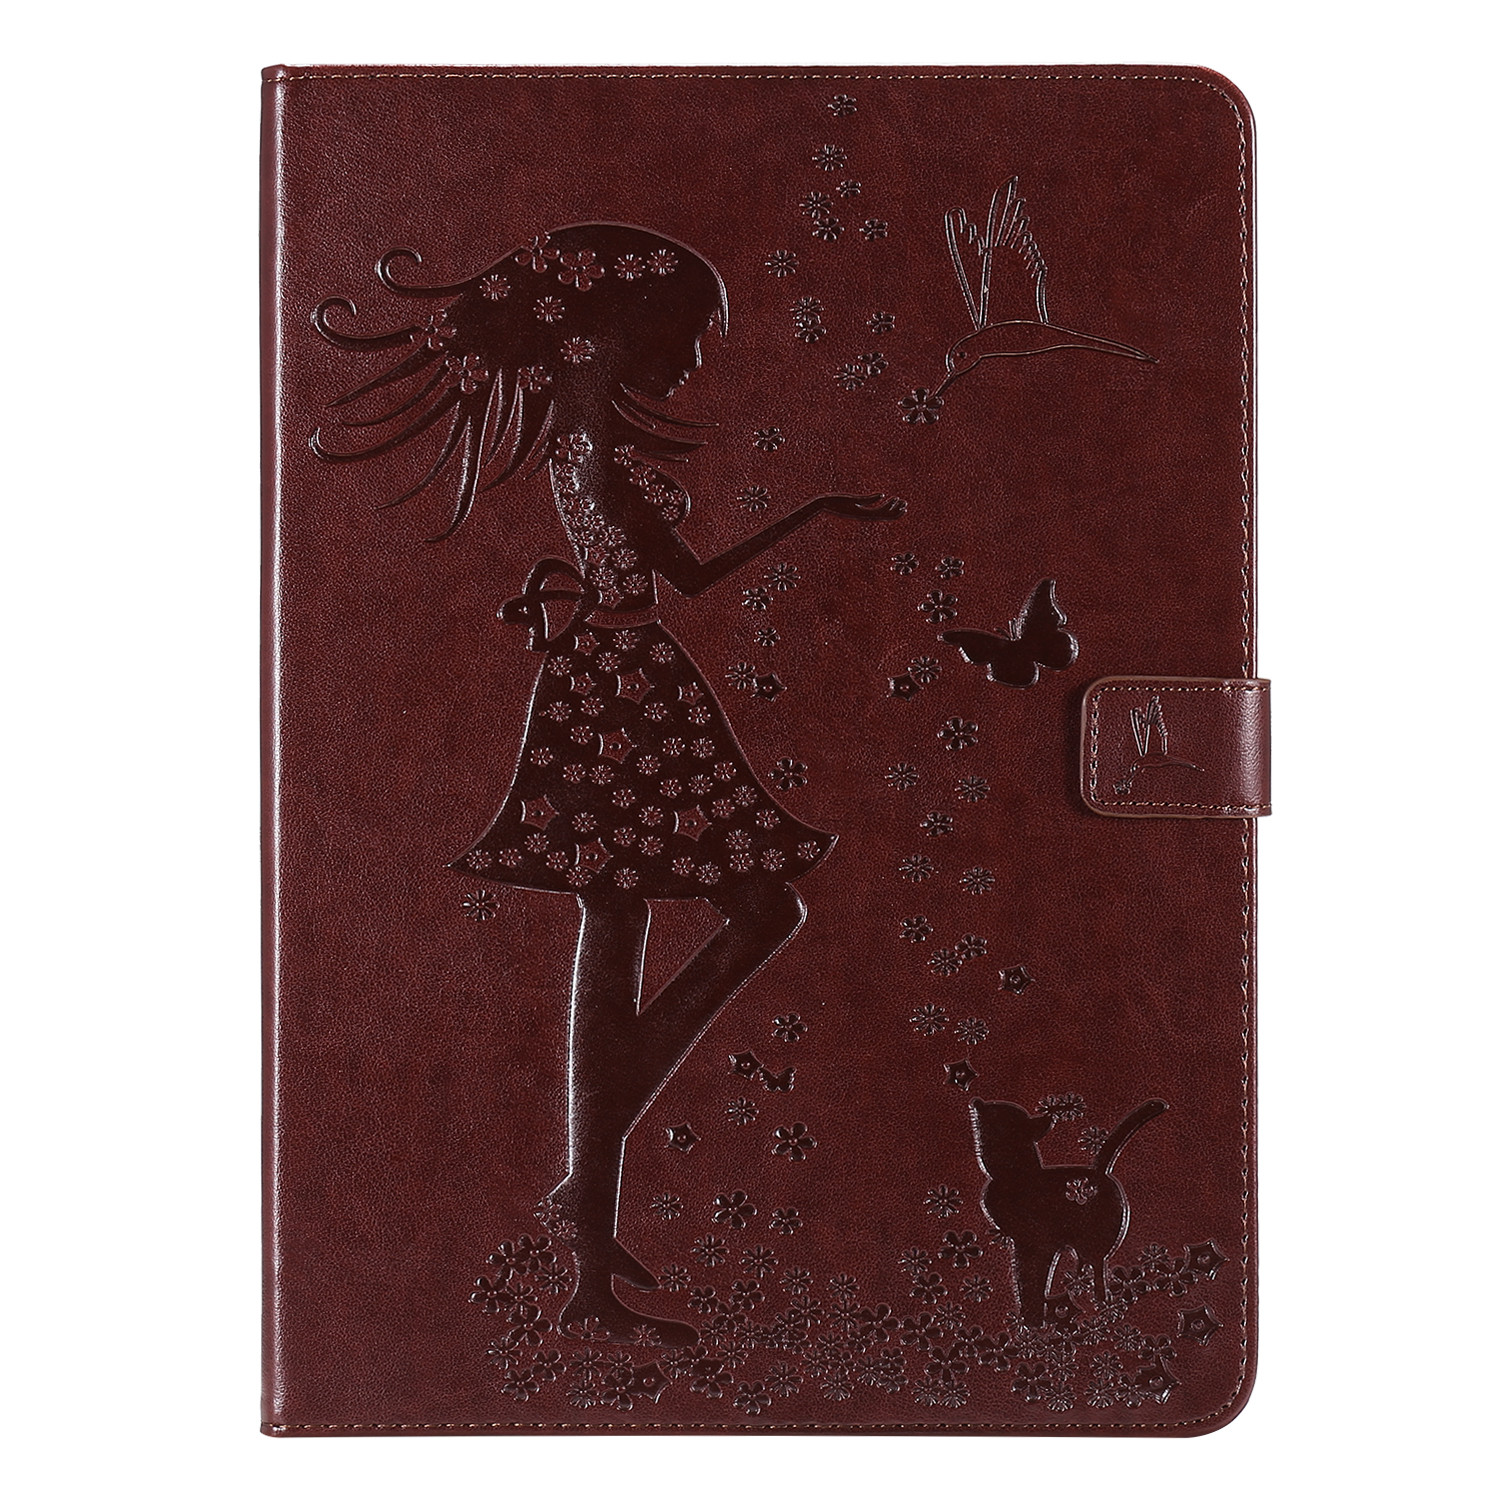 6 Purple For iPad 4th Gen 12 9 Cover 2020 Funda Cover Stand Leather Shell Folio Protective Case